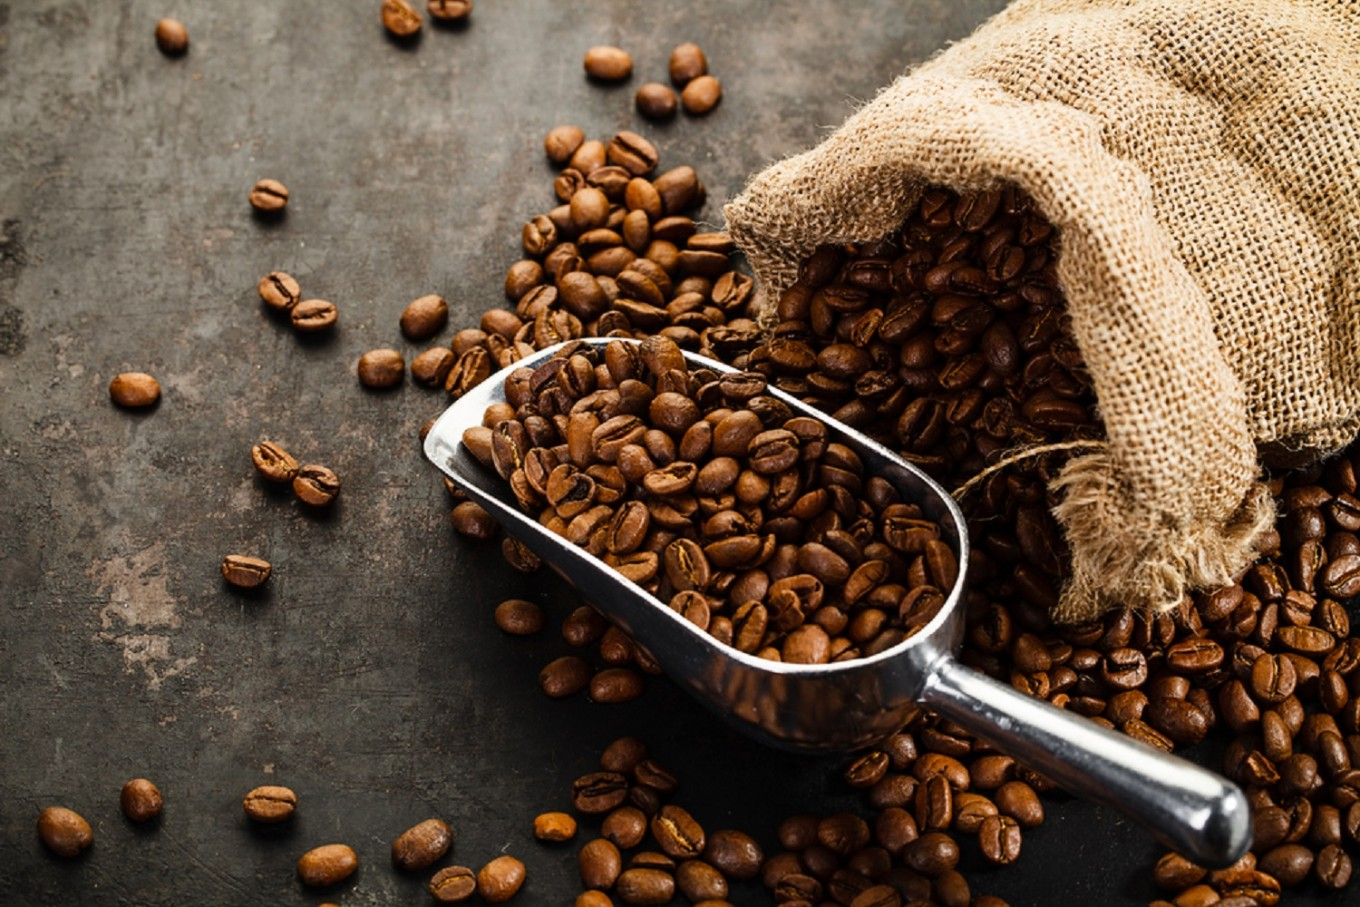 Five top tips for storing coffee